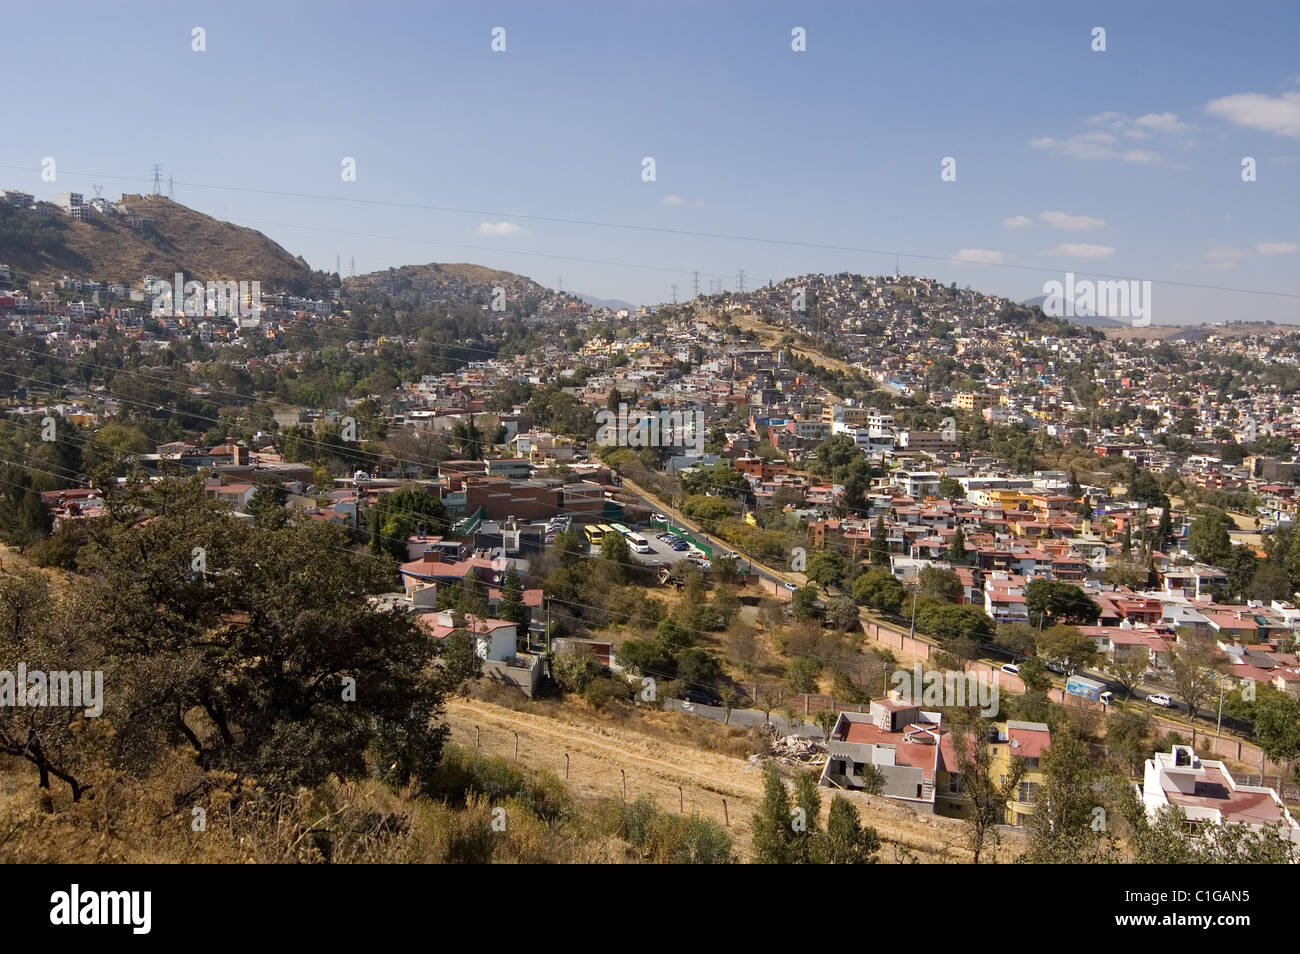 View of Mexico city metropolitan area from a hill - Stock Image